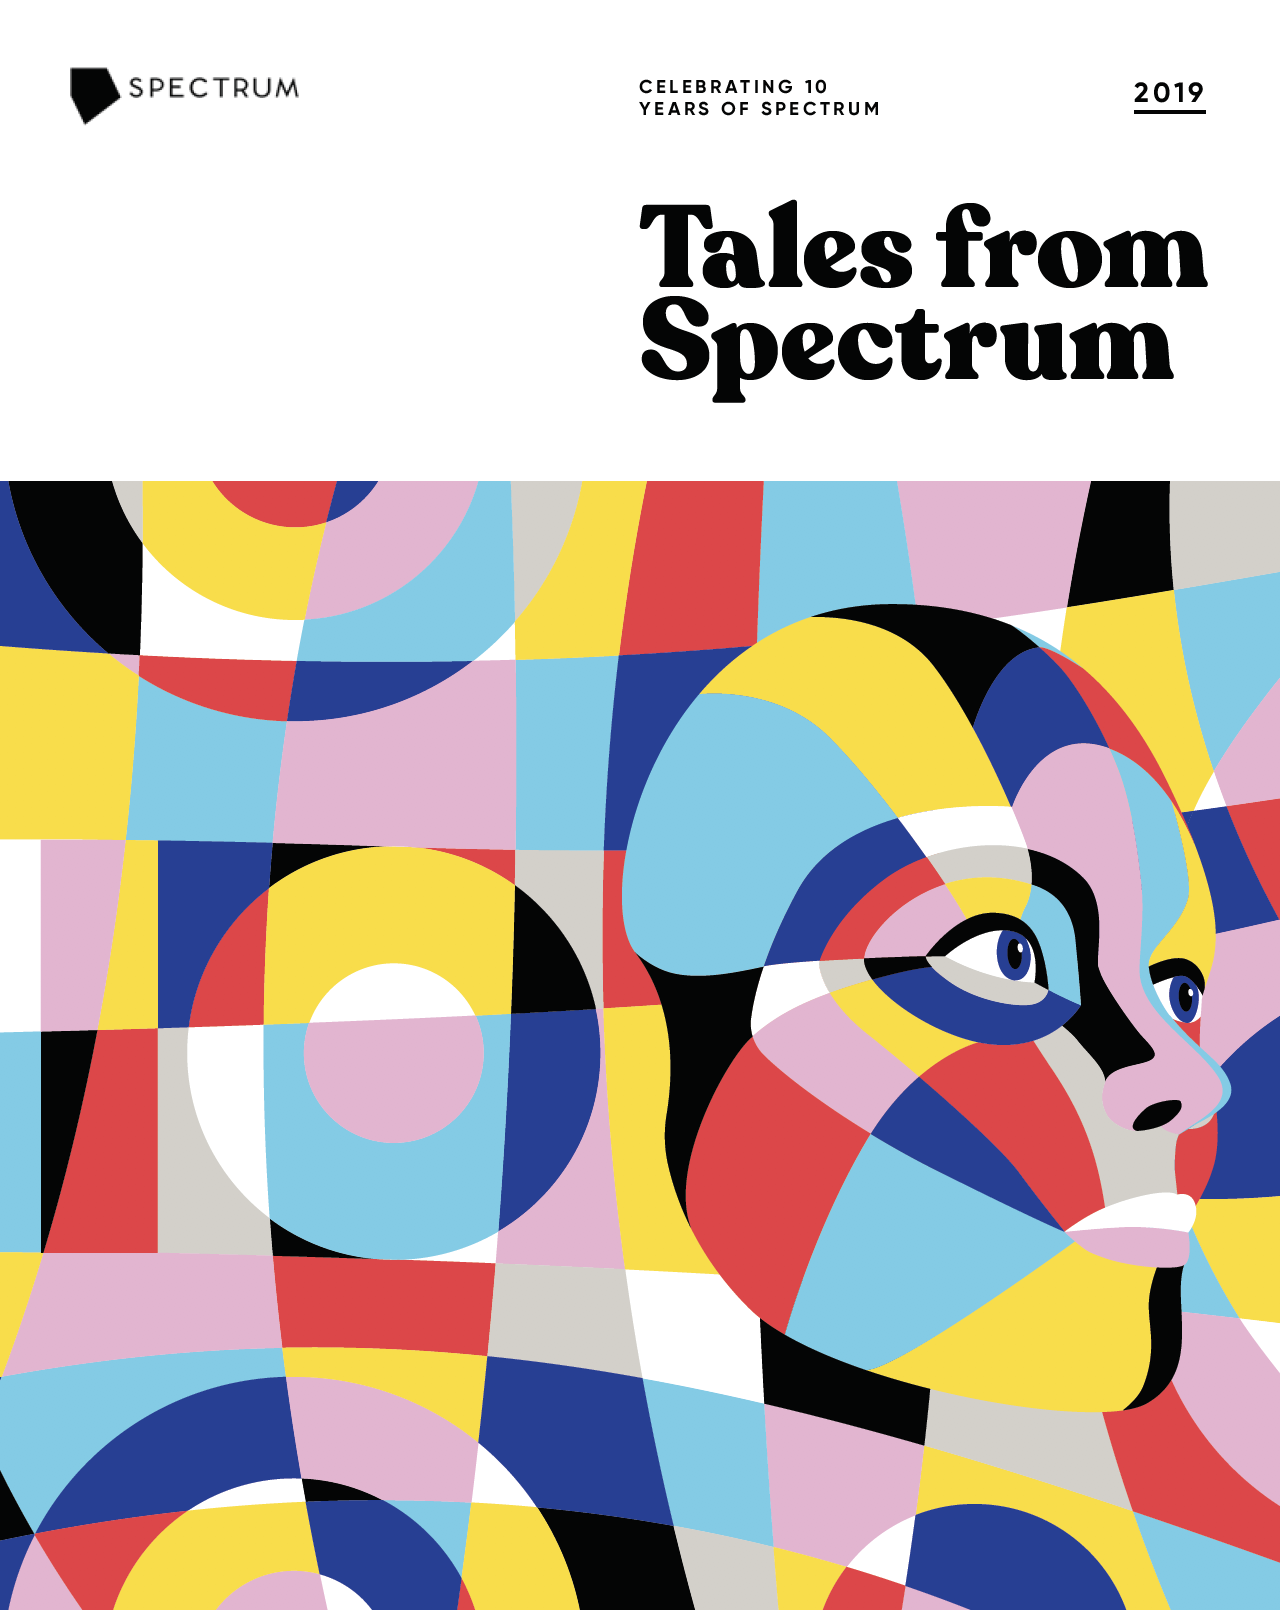 Tales from Spectrum 2019